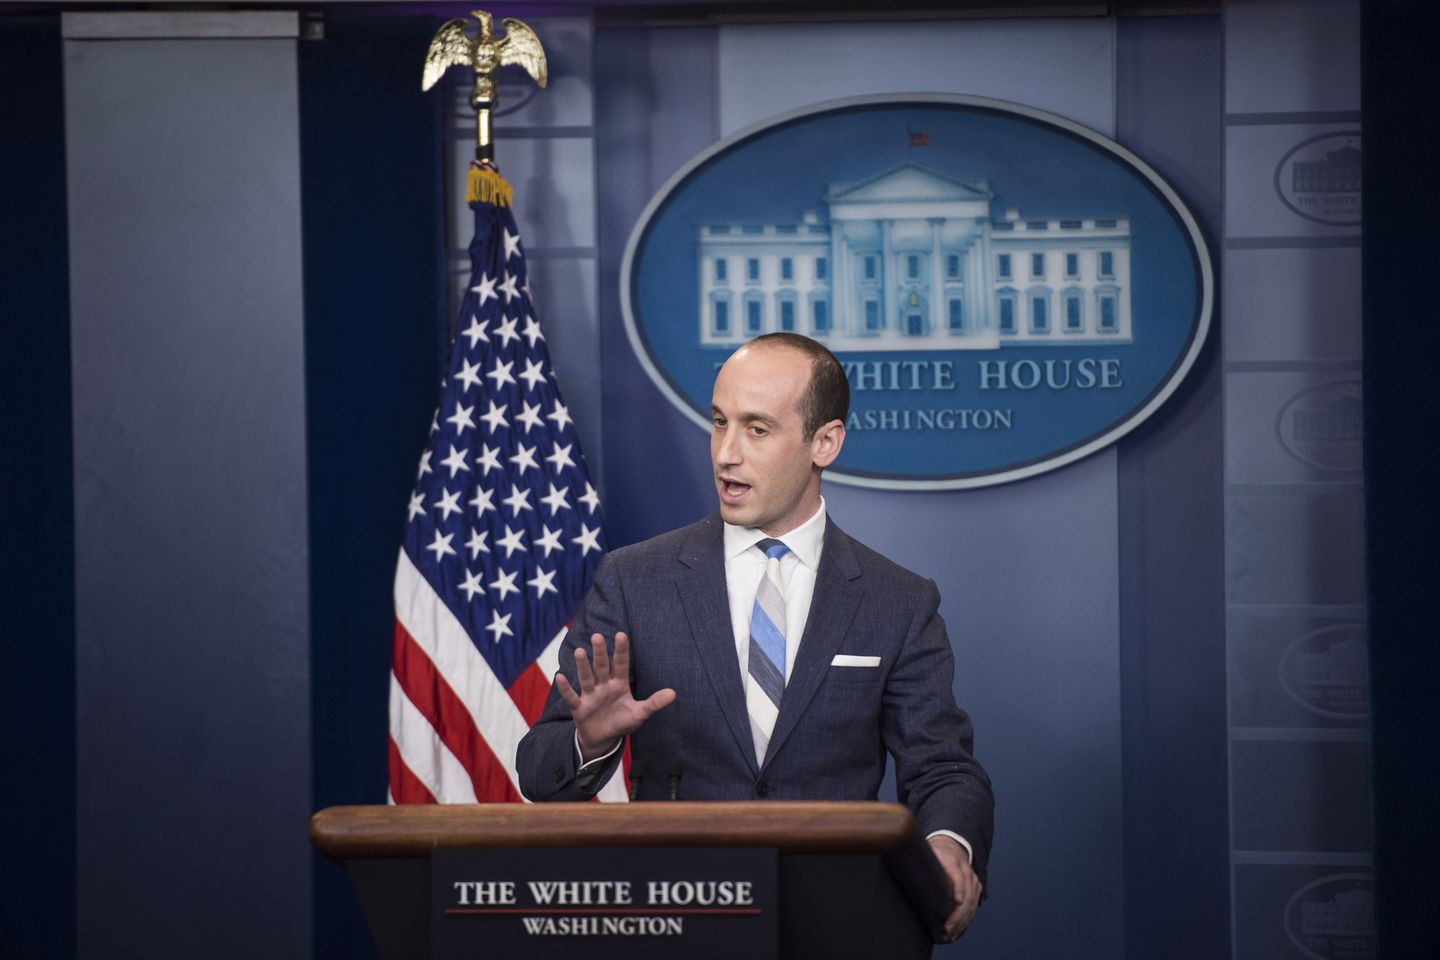 Miller speaks during a news briefing at the White House on Aug. 2, 2017. (Jabin Botsford/The Washington Post)